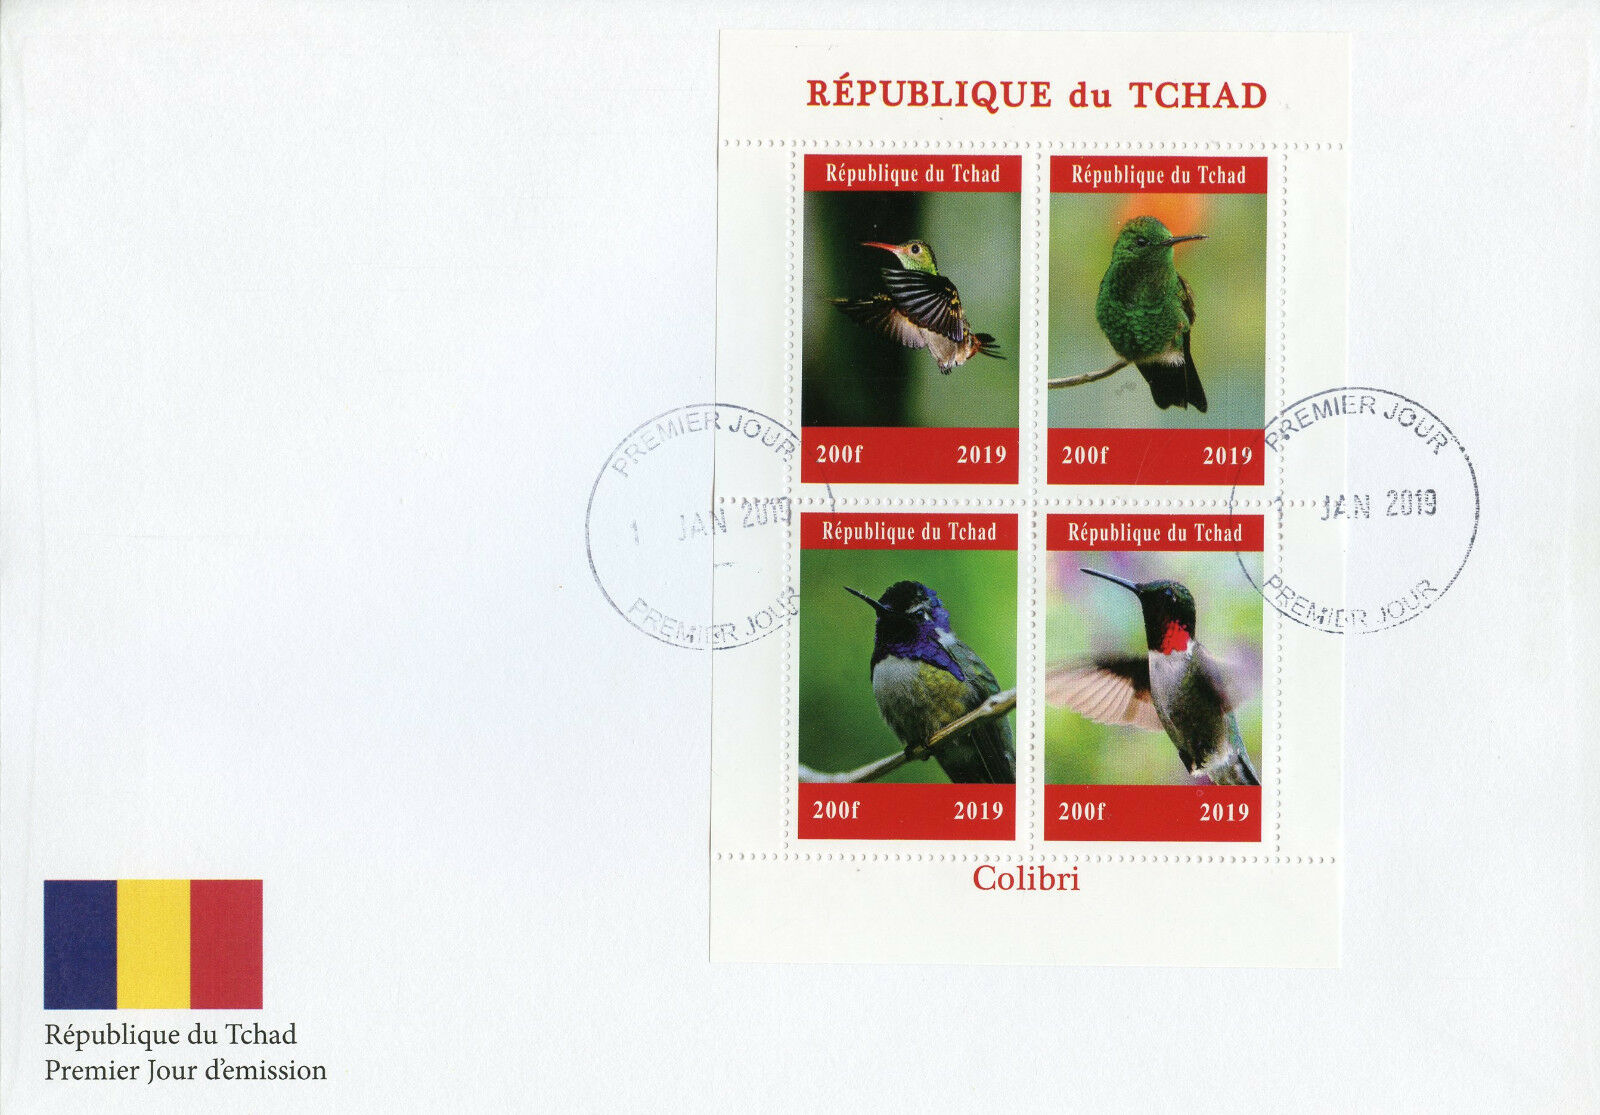 Republic of Chad - Hummingbirds (January 1, 2019) first day cover